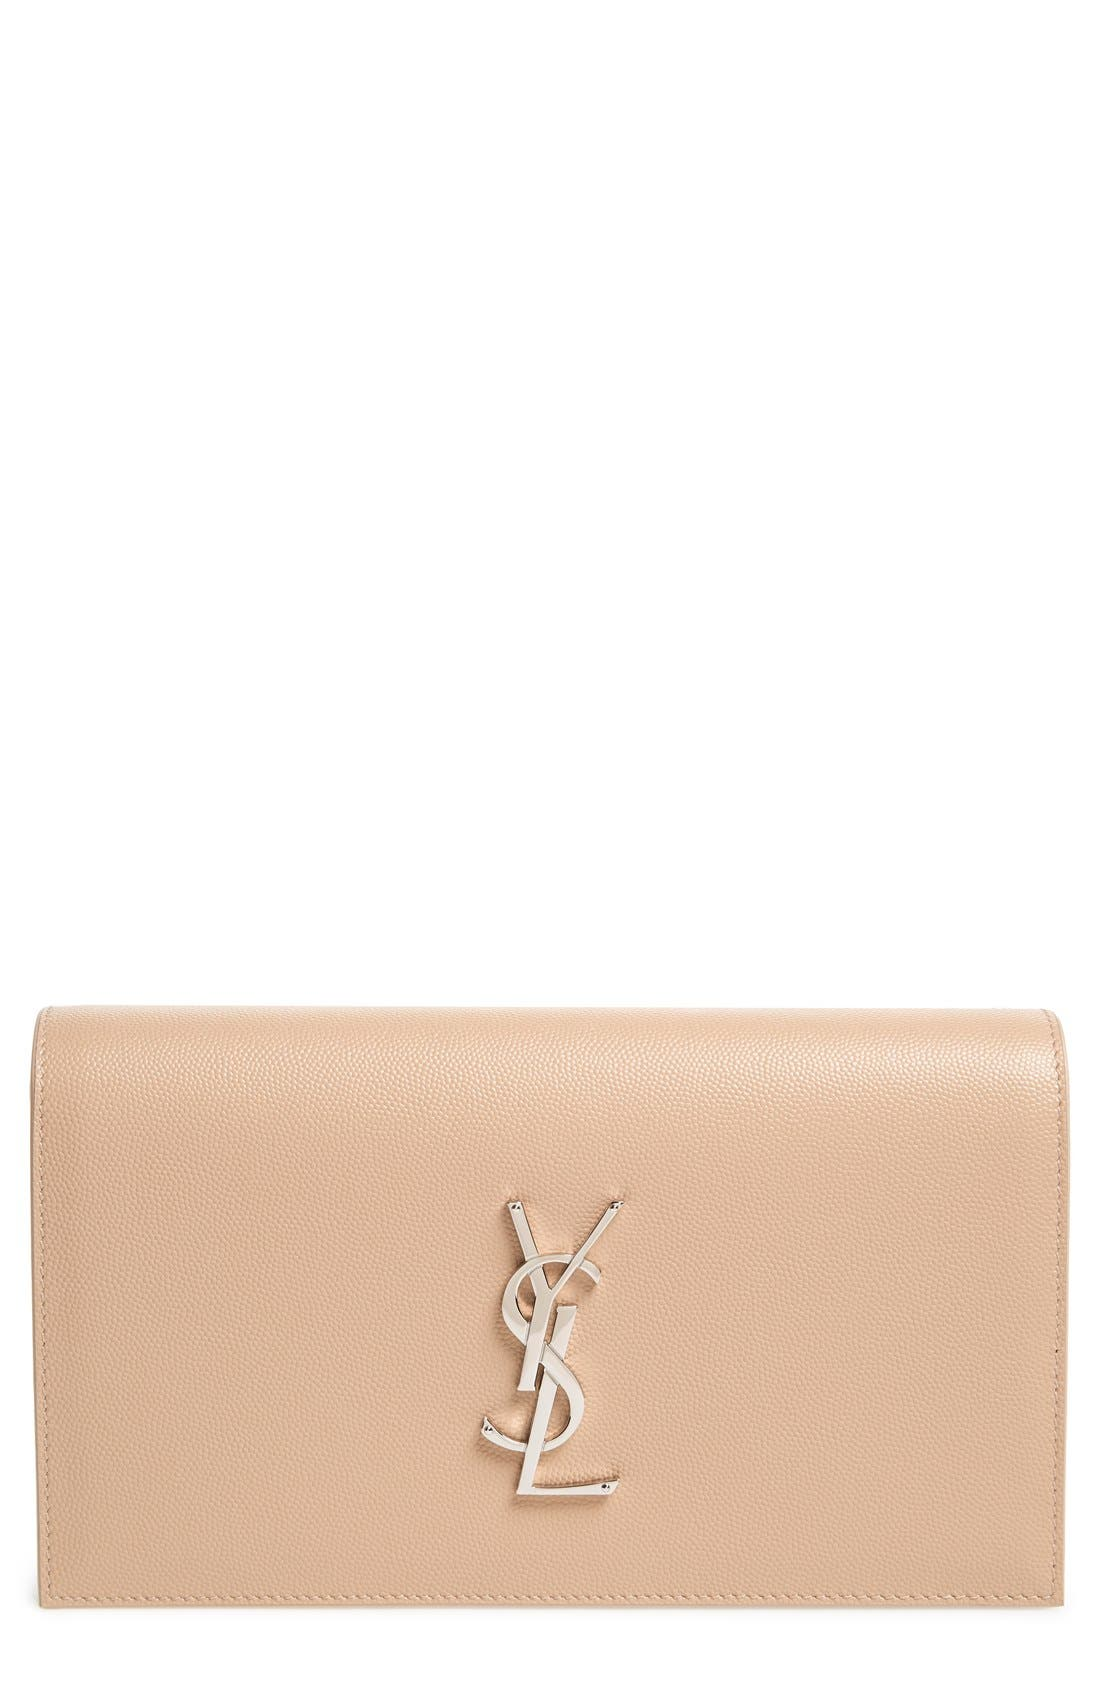 Alternate Image 1 Selected - Saint Laurent 'Monogram' Leather Clutch